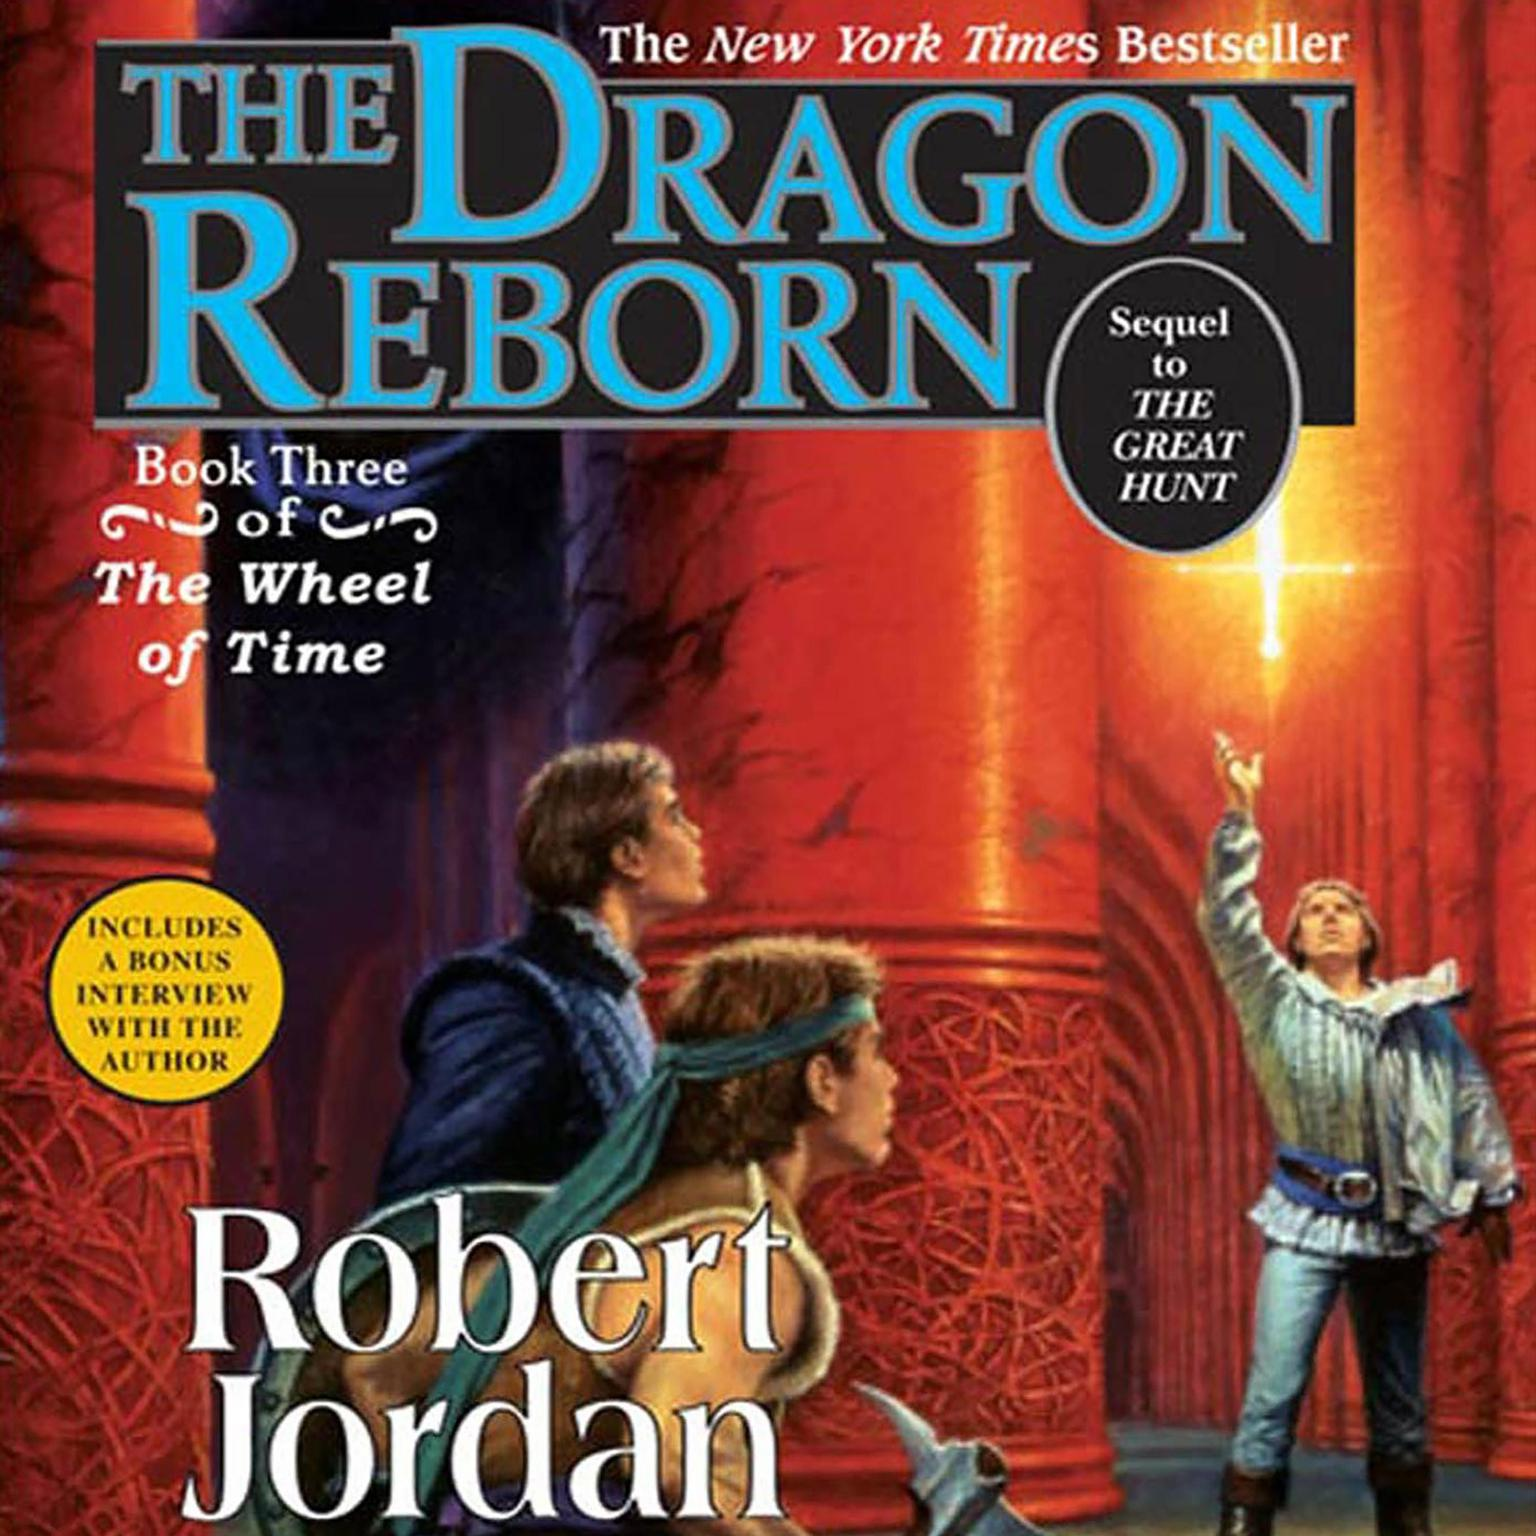 Printable The Dragon Reborn: Book Three of 'The Wheel of Time' Audiobook Cover Art